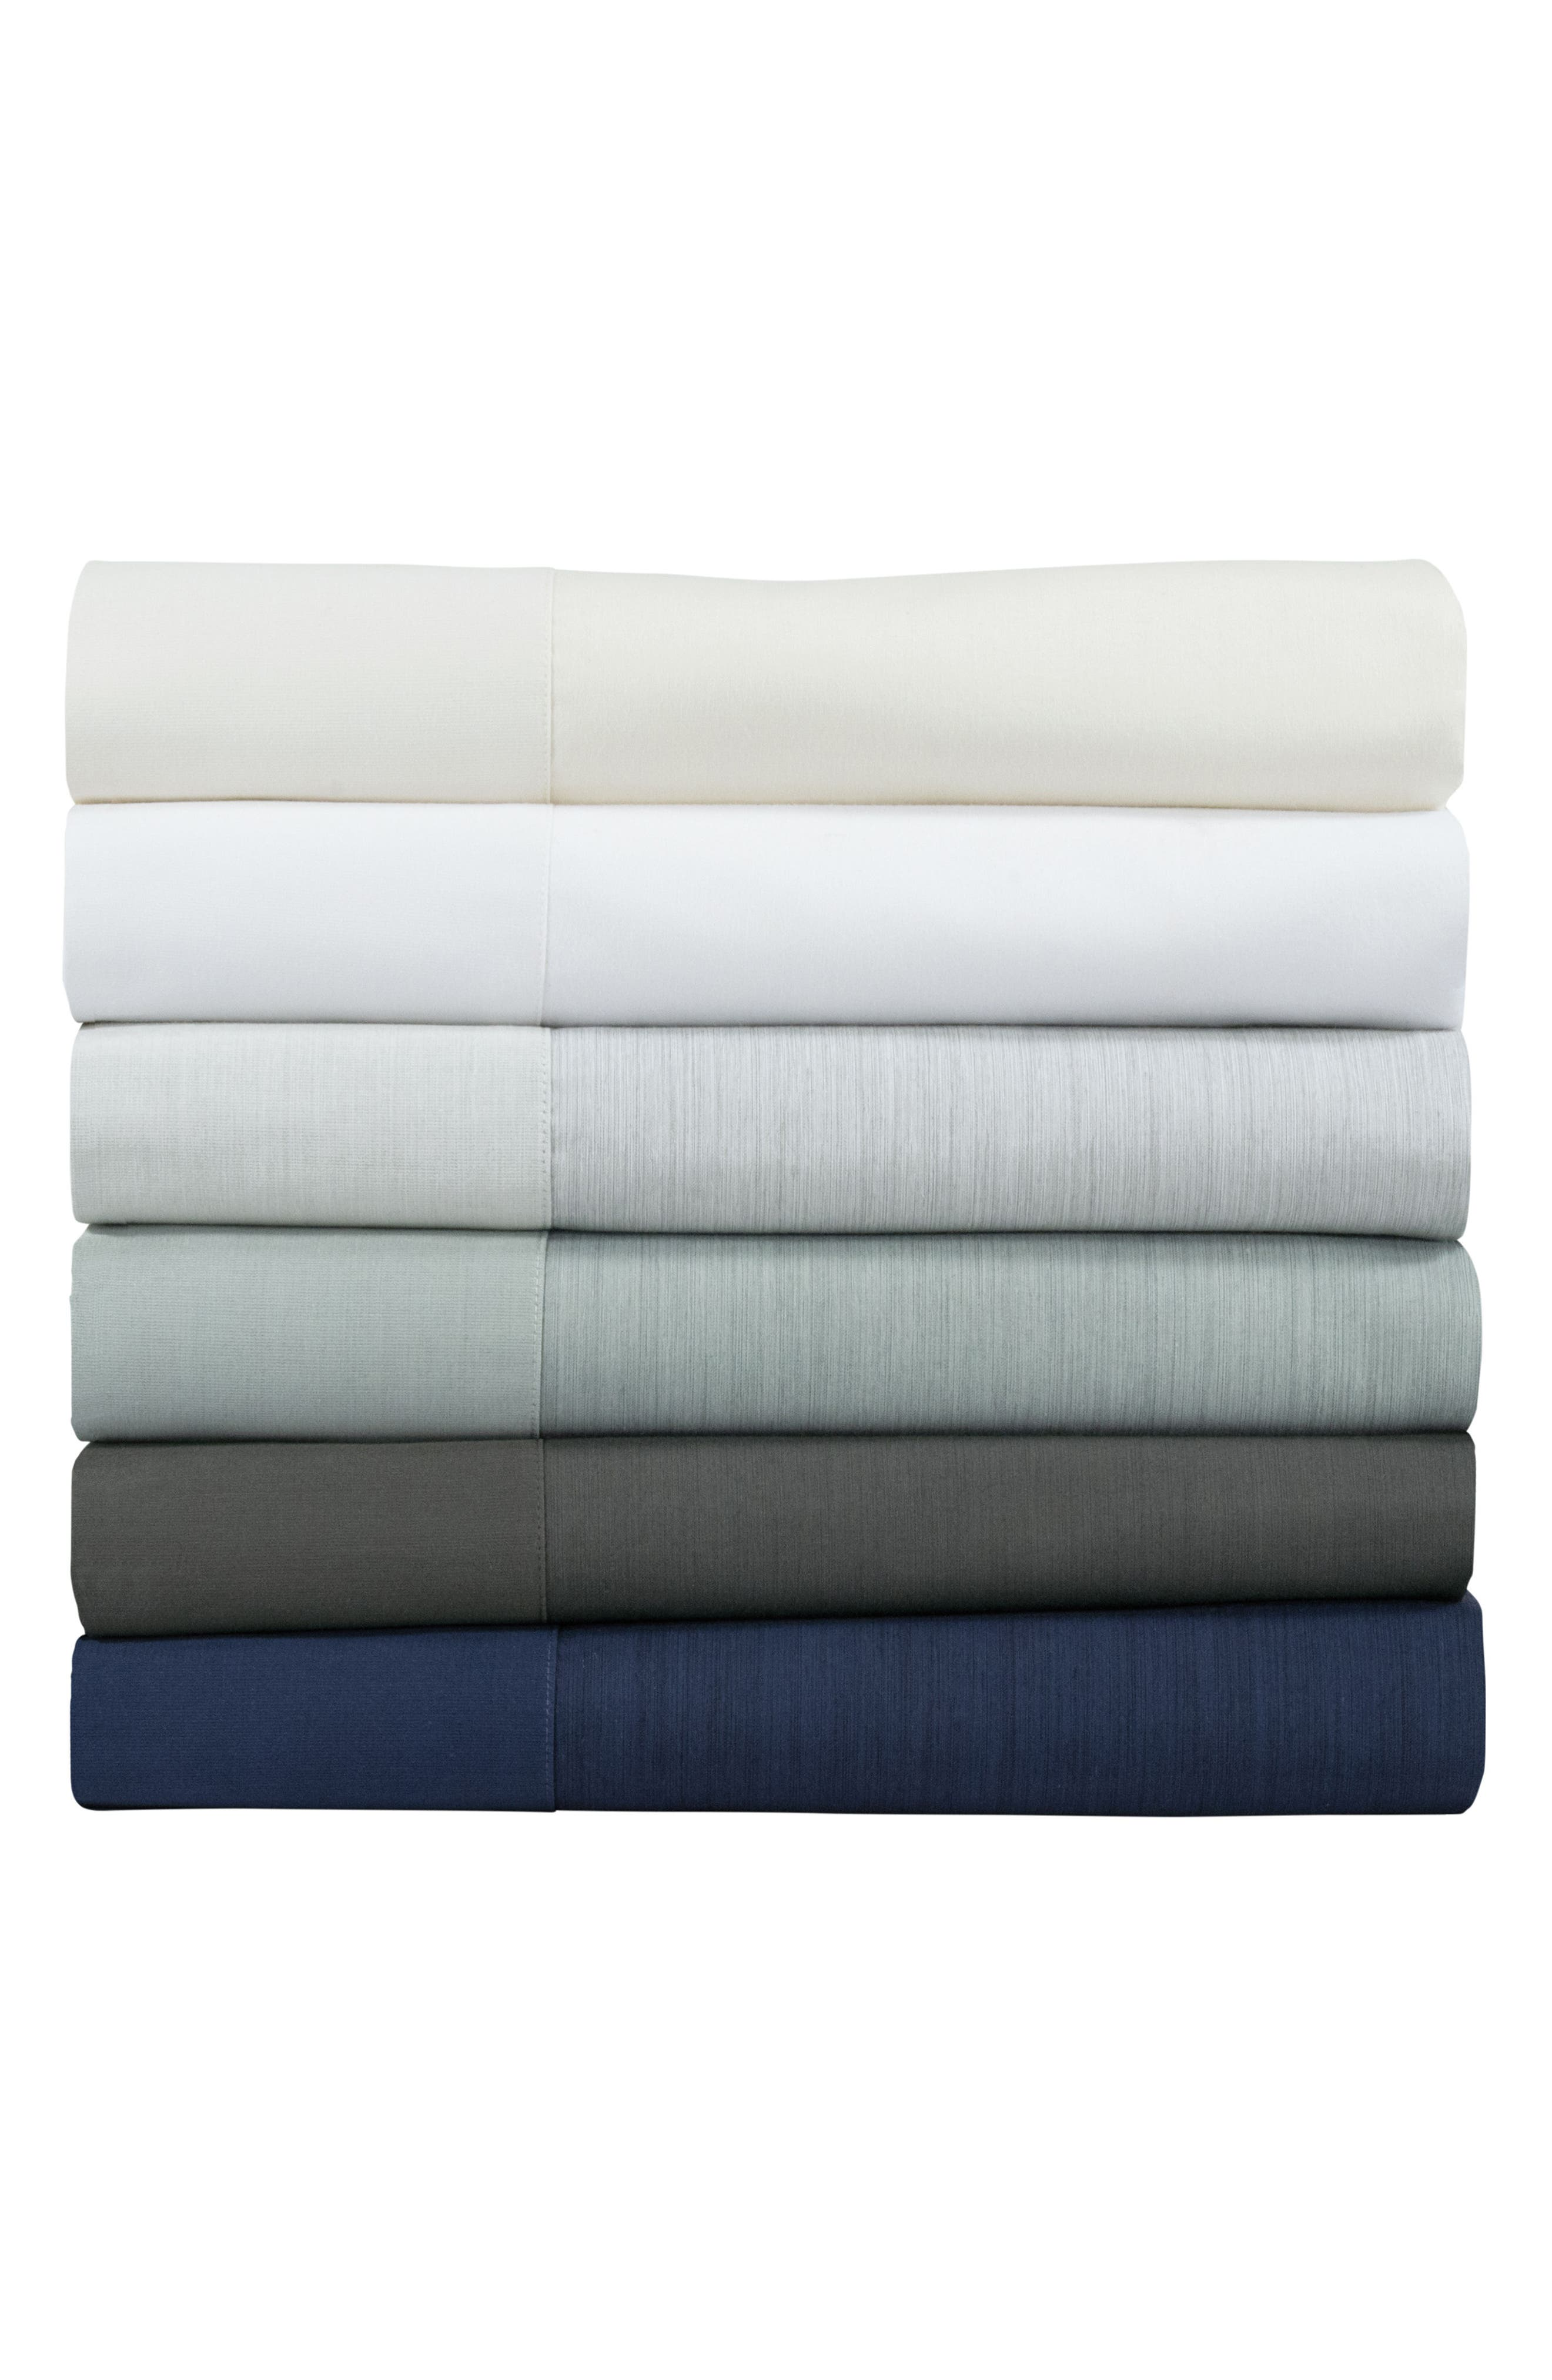 Striated Band 400 Thread Count Flat Sheet,                             Alternate thumbnail 2, color,                             Seafoam